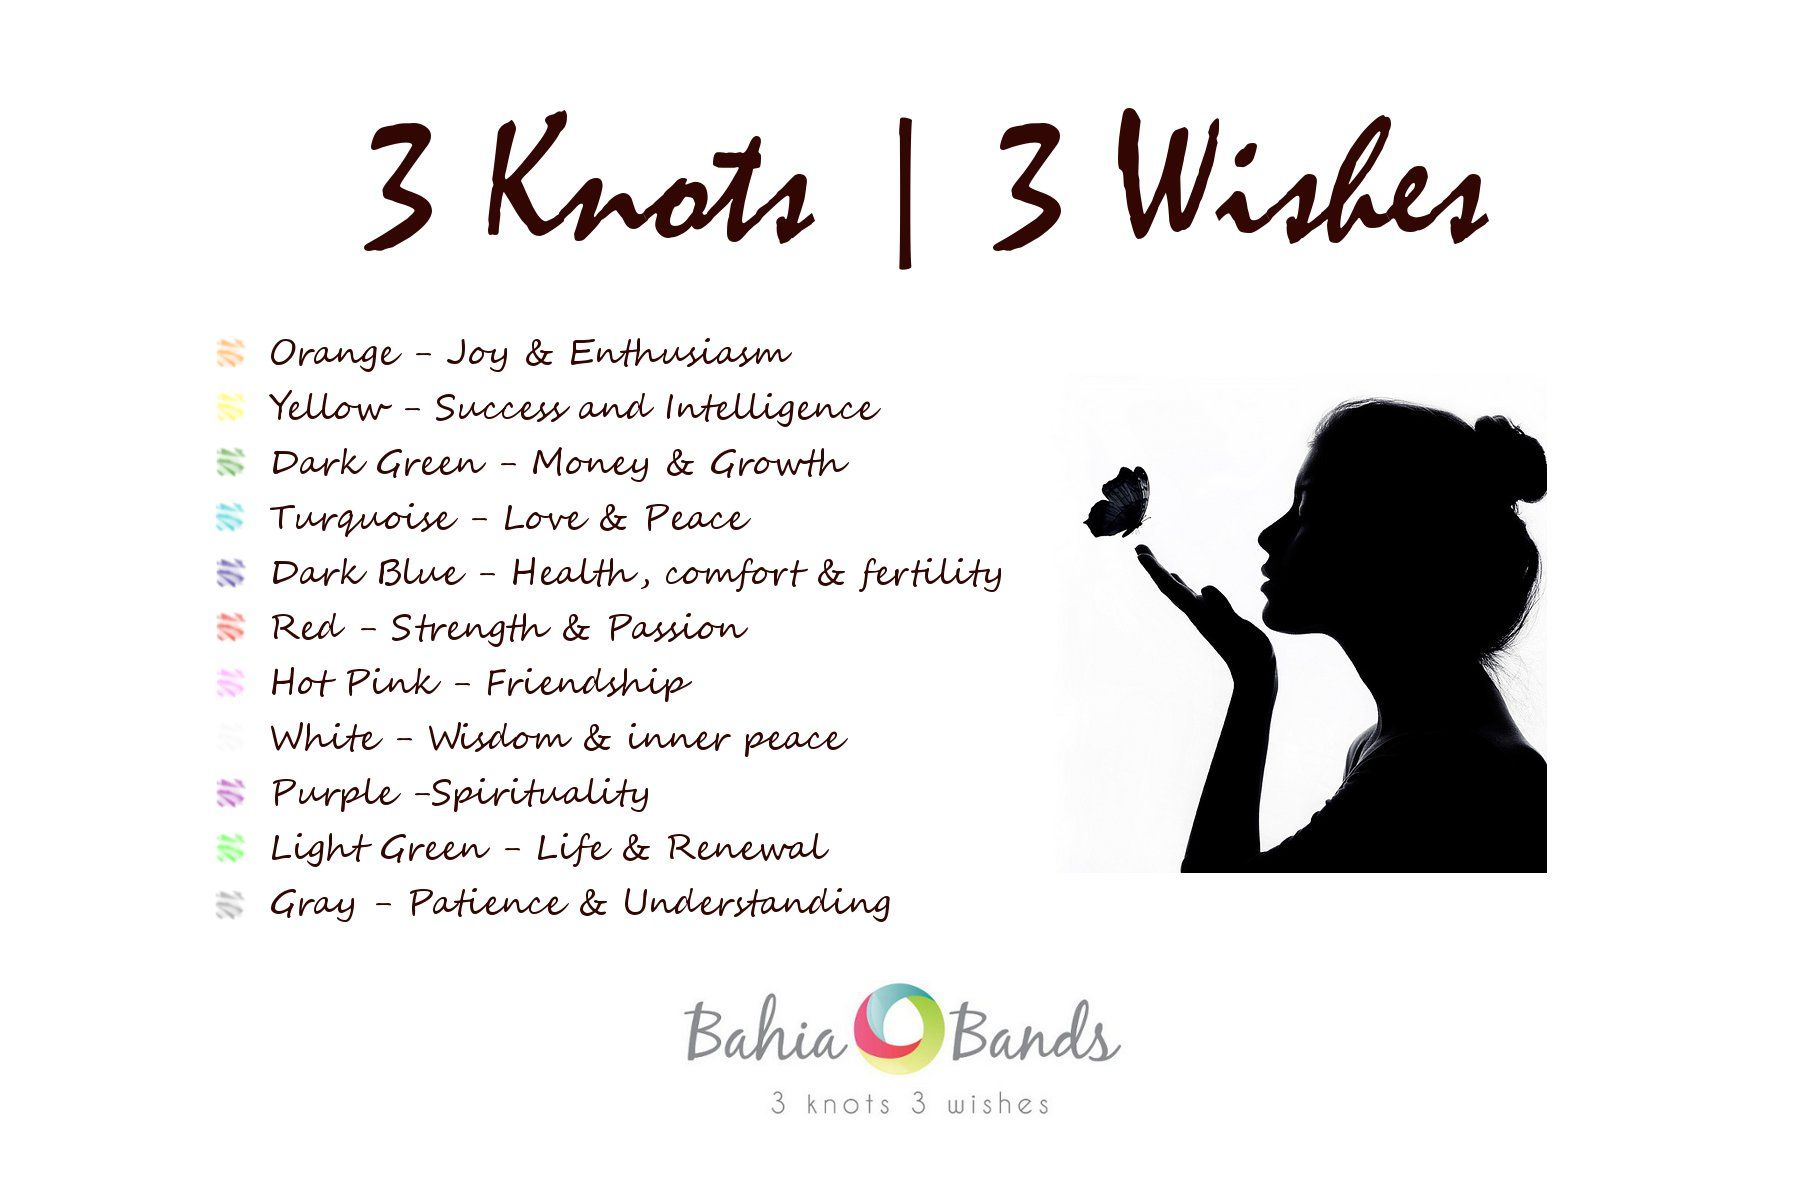 3 Knots 3 wishes....I recently tied a red one on